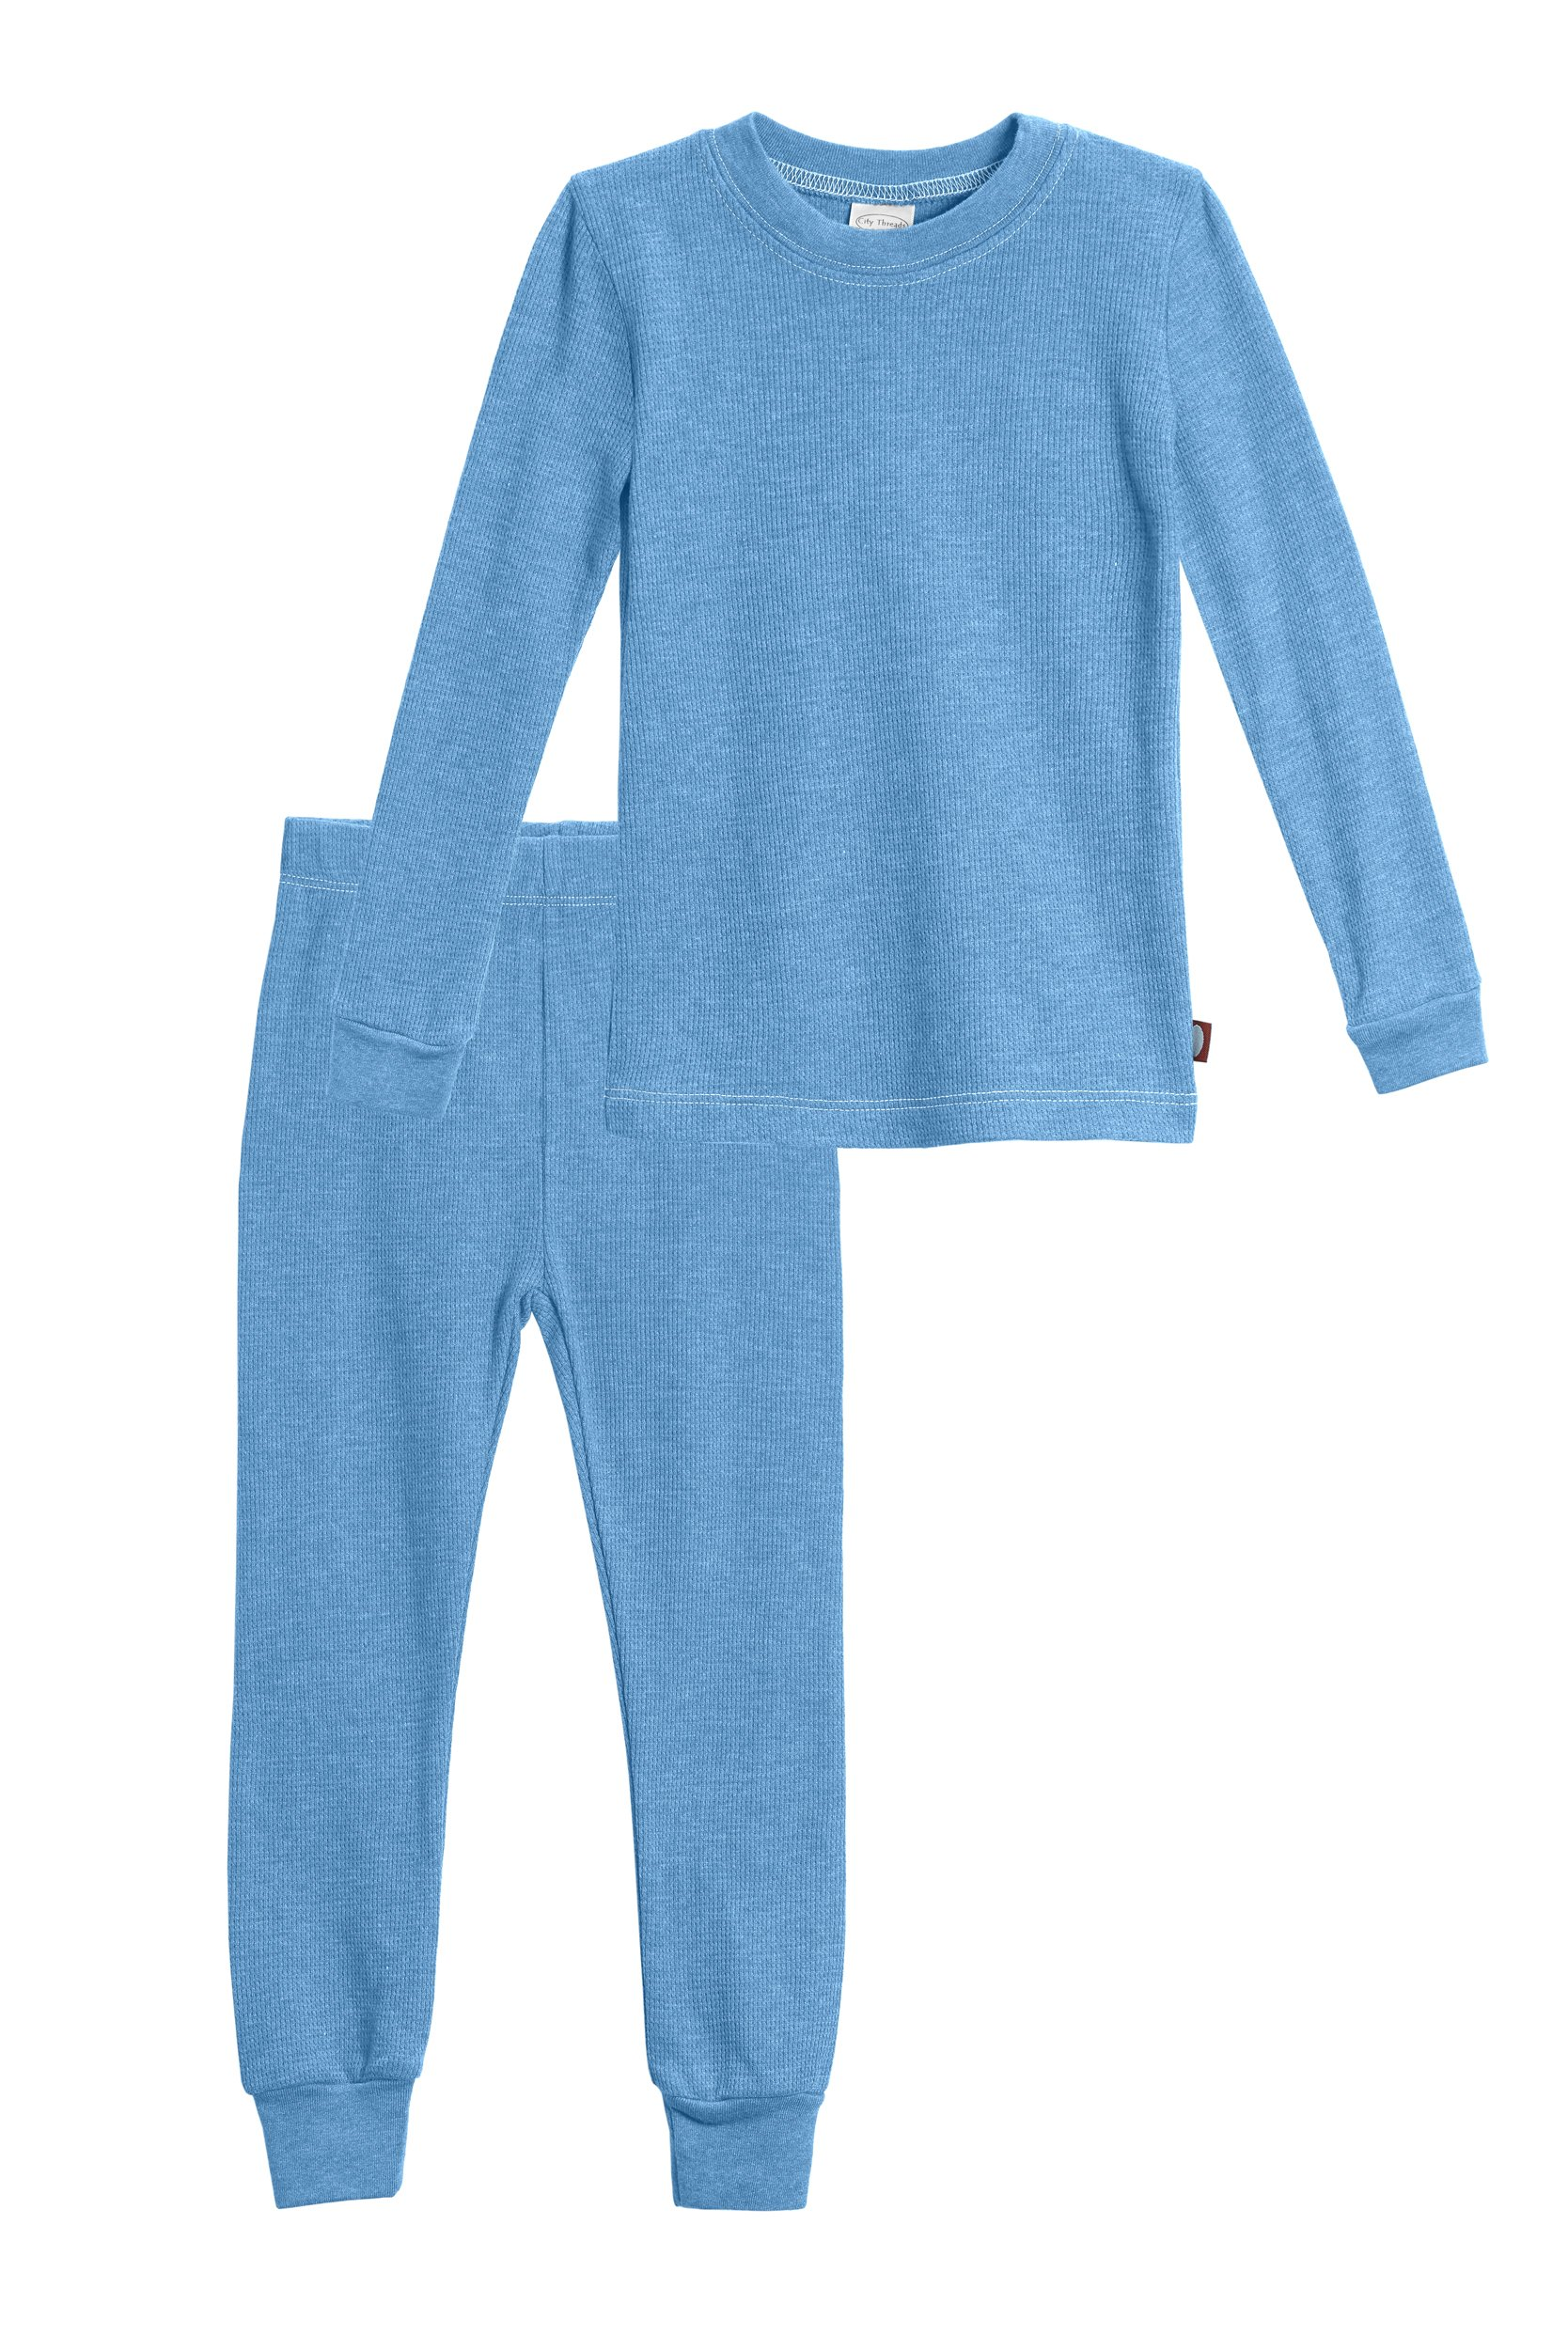 City Threads Little Boys Thermal Underwear Set Perfect For Sensitive Skin SPD Sensory Friendly, Sea- 2T by City Threads